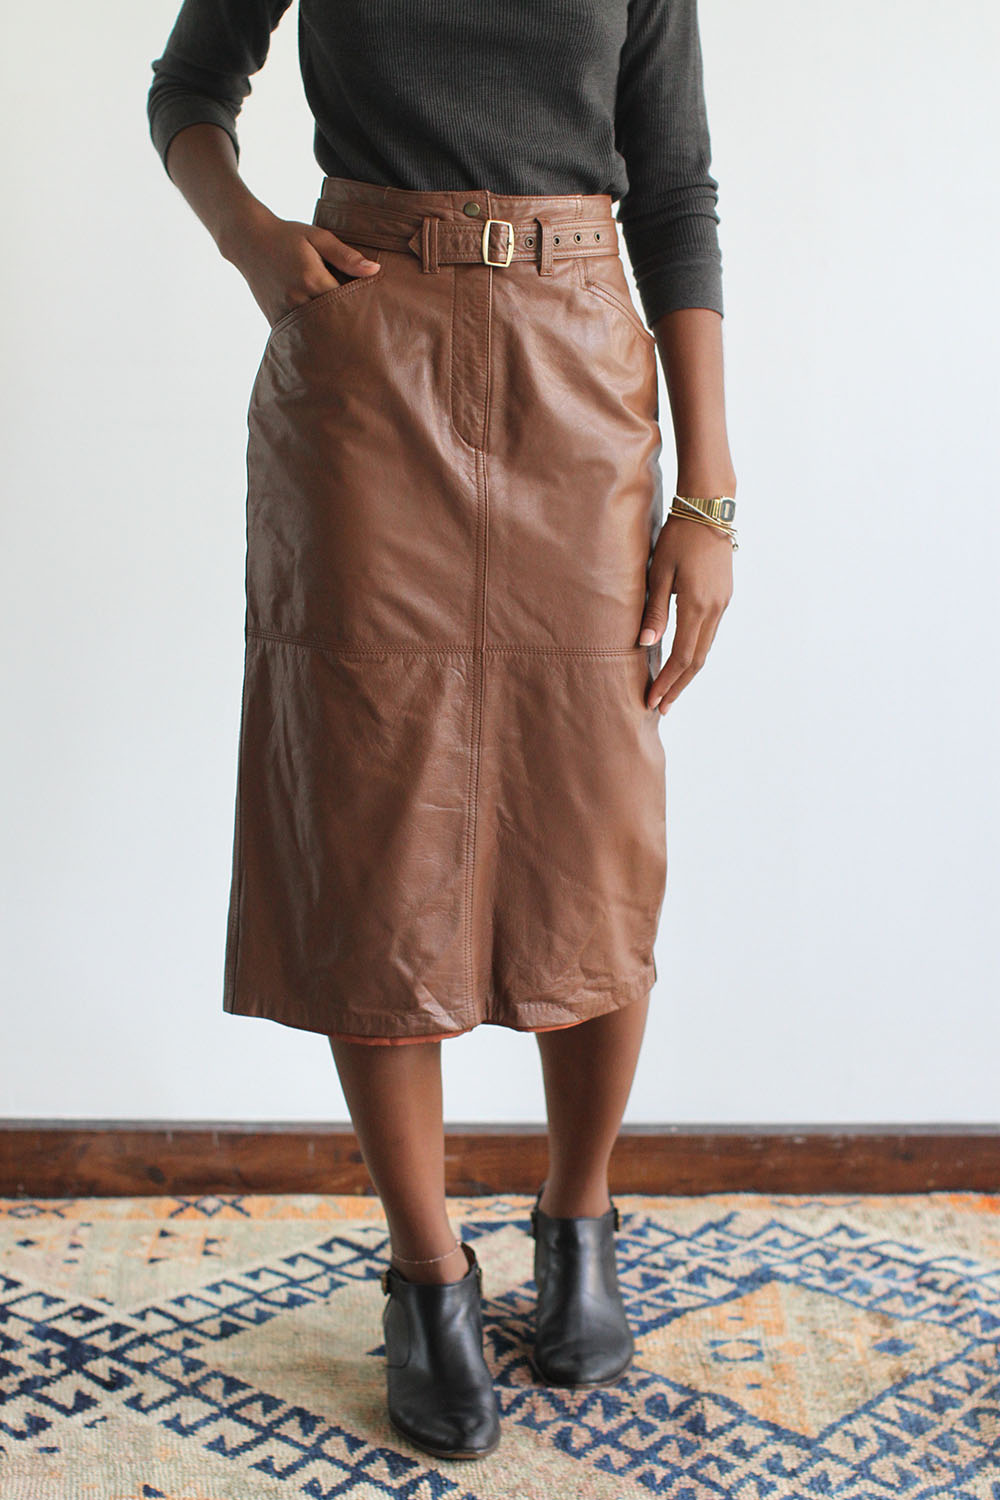 rawson vintage caramel leather pencil skirt from the